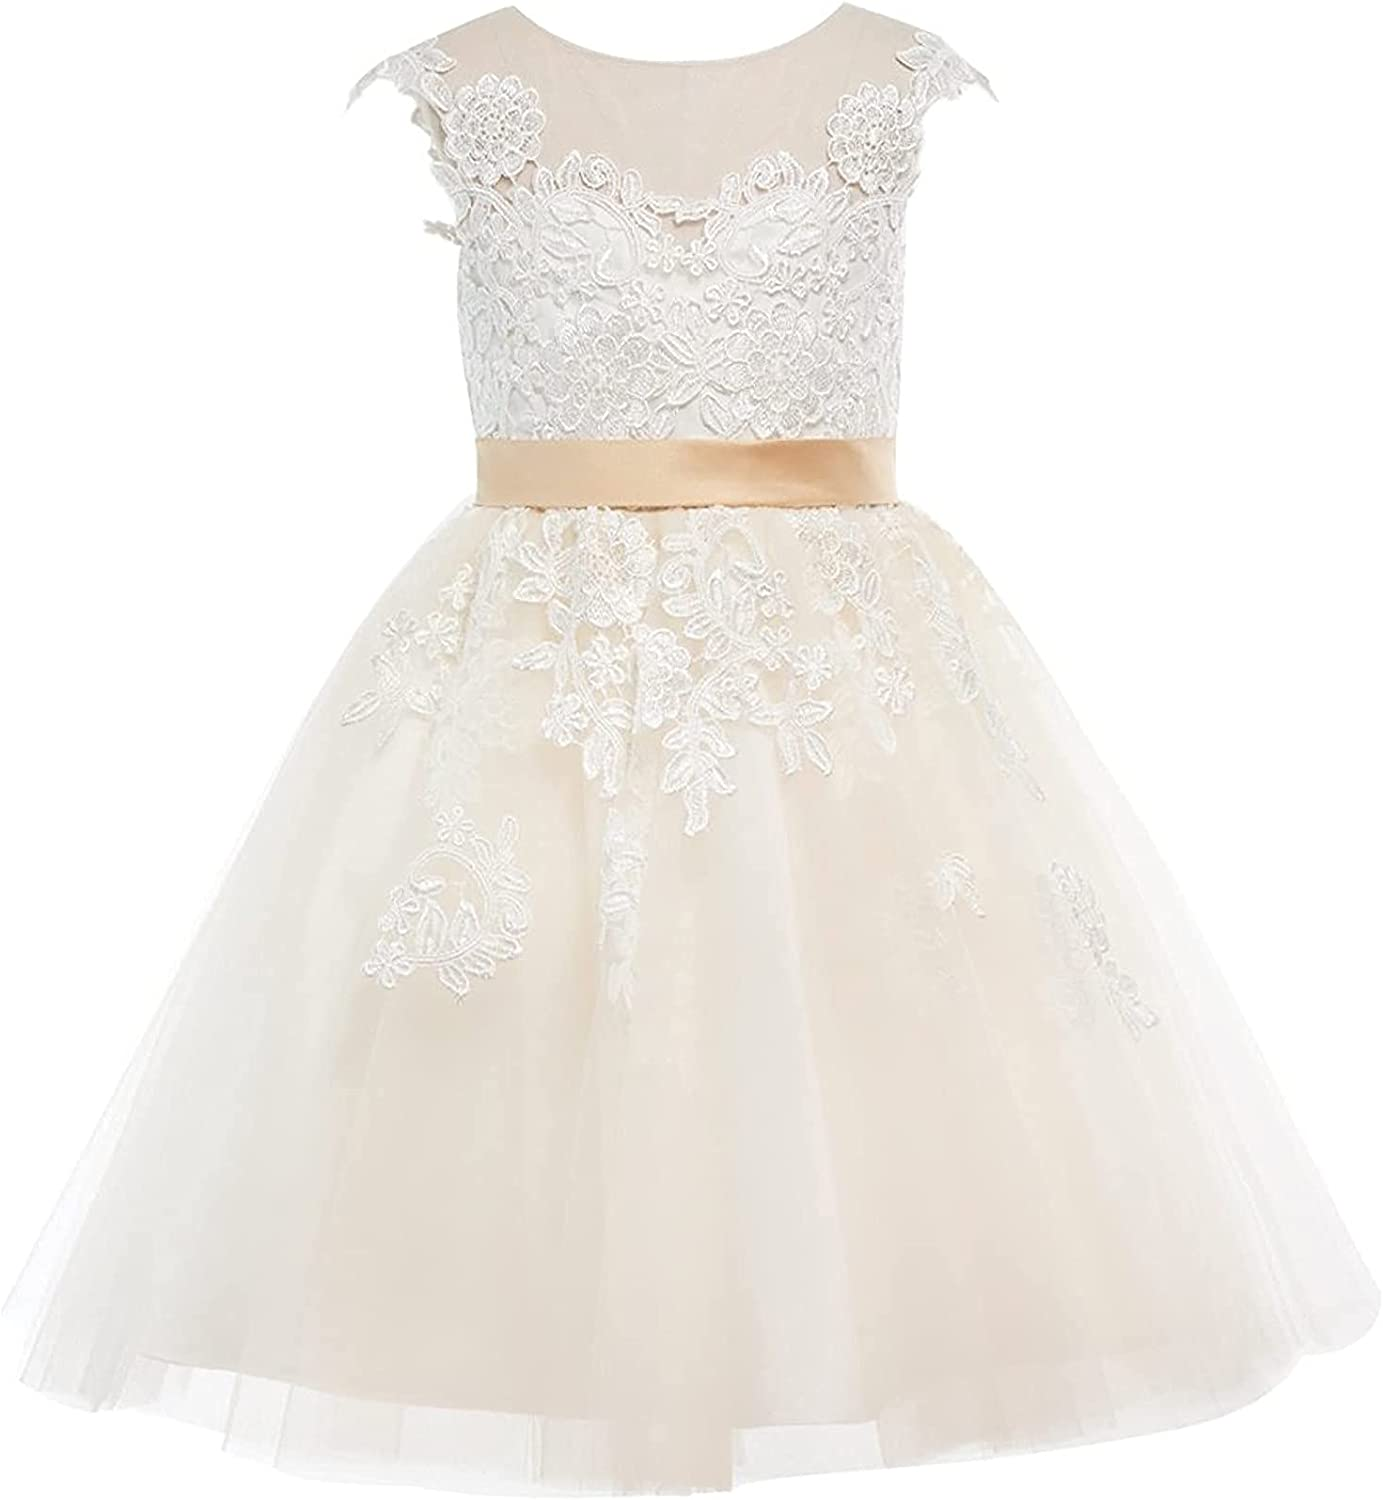 XUHUA Champagne Lace Tulle Wedding Flower Girl Dress Junior Bridesmaid Dress Communion Floral Boho Vintage Lace Dance Gown